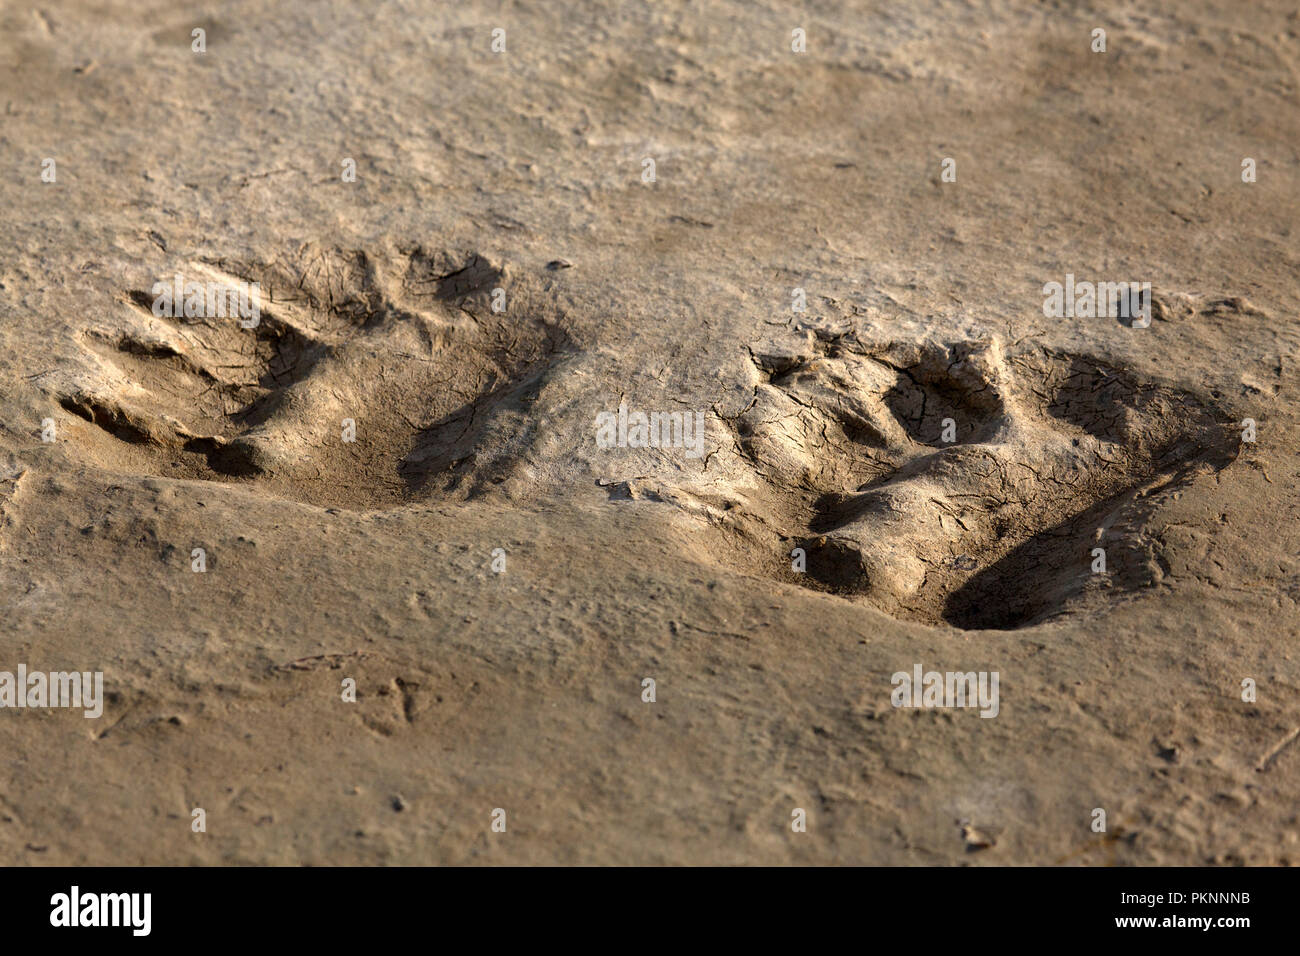 Bear tracks left on muddy ground in the subarctic in Manitoba, Canada. The tracks have been left by a polar bear. - Stock Image